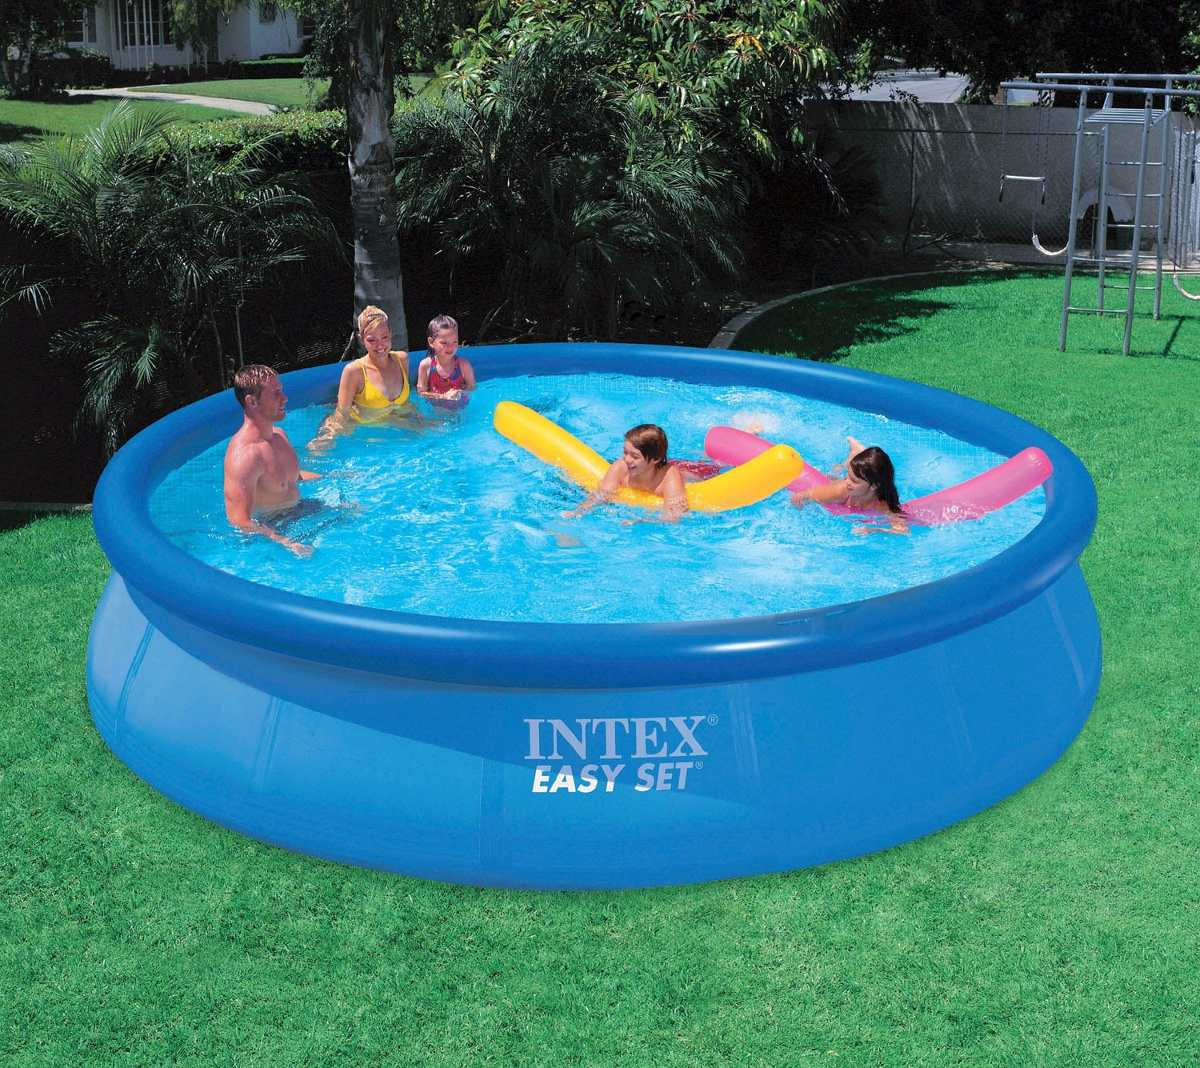 Alberca intex redondas f cil instalaci n grandes 15ft x for Albercas intex precios